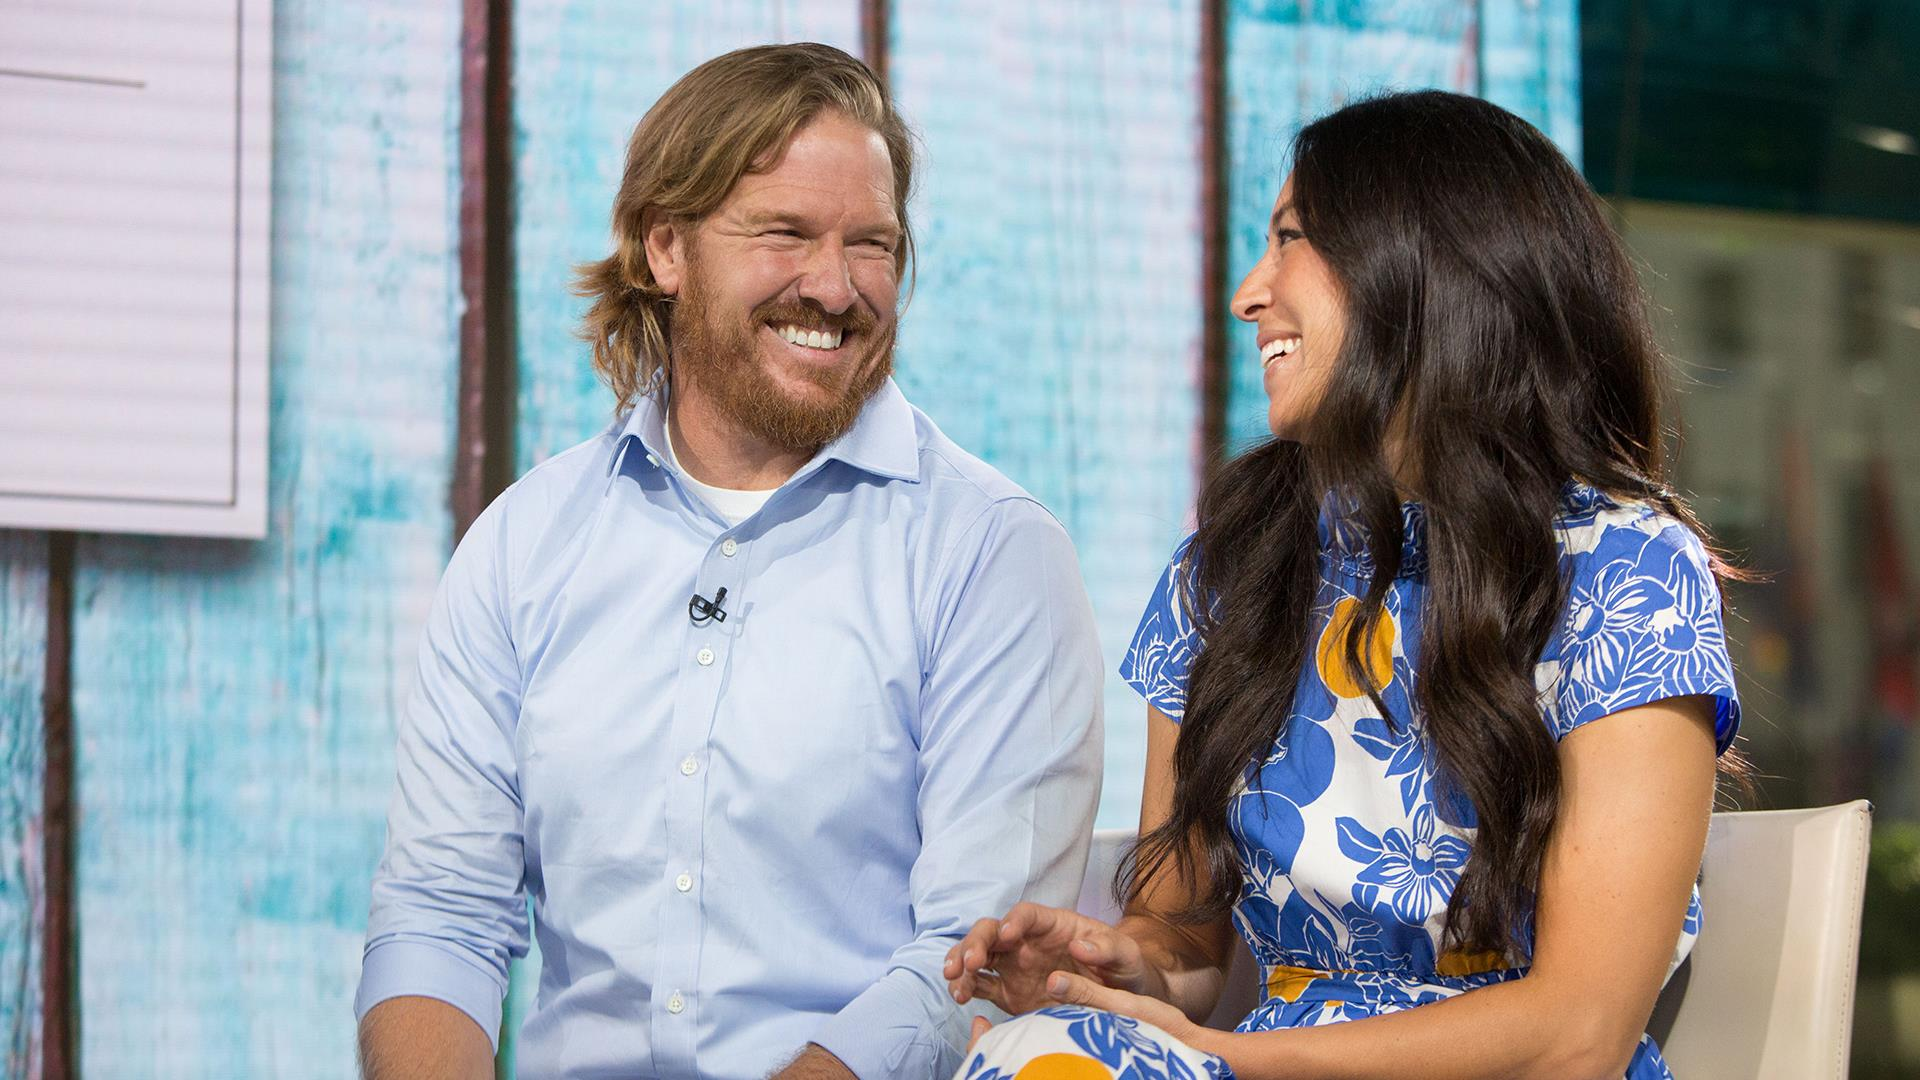 Chip and joanna gaines reveal the cover of chip s new book for Where is joanna gaines originally from